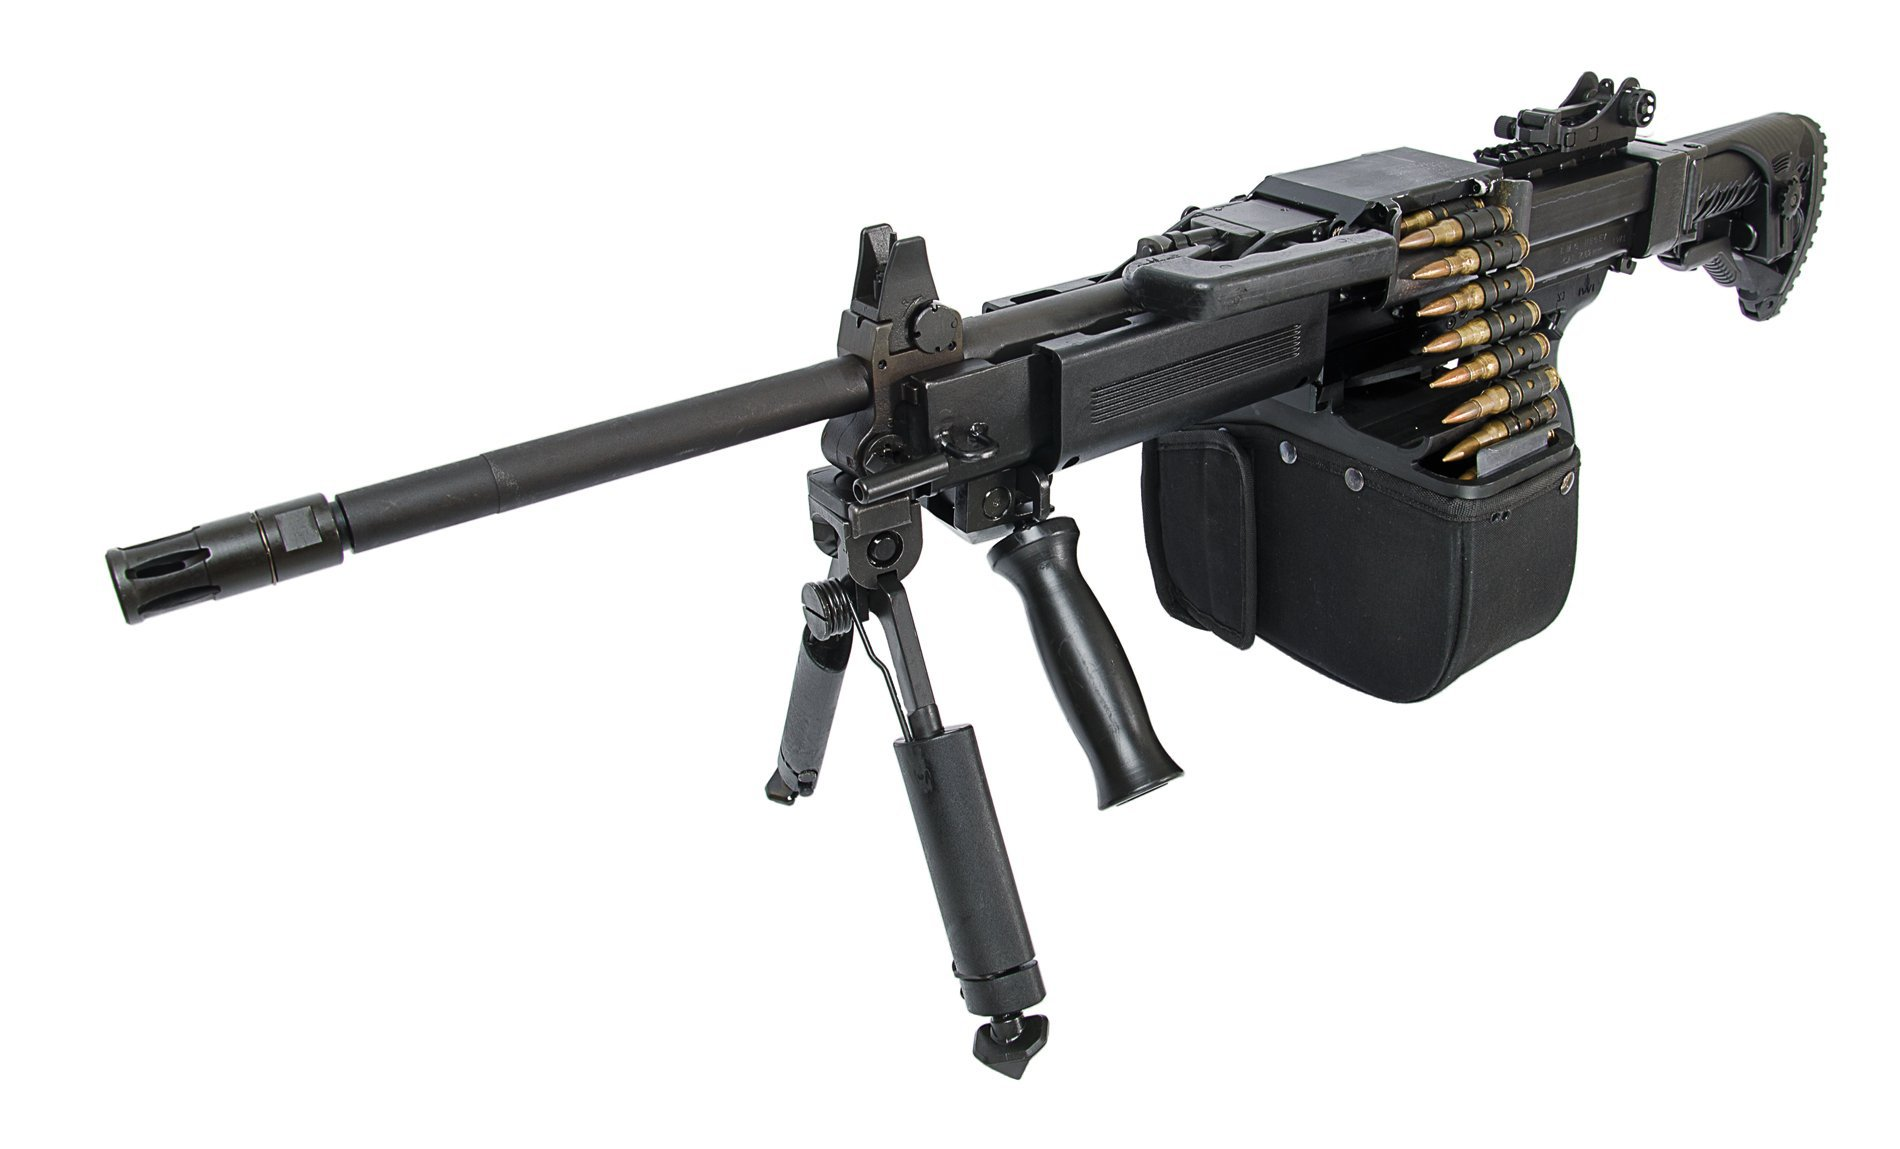 """Israel Weapon Industries IWI NEGEV NG7 LMG/LMG SF Belt-Fed 7.62mm NATO """"Light Machine Gun"""": Lightweight and Highly-Mobile Select-Fire 7.62x51mm Medium Machine Gun/General Purpose Machine Gun (MMG/GPMG) for Military Infantry Special Operations Forces (SOF) Missions in Urban Warfare Environments (Video!)"""